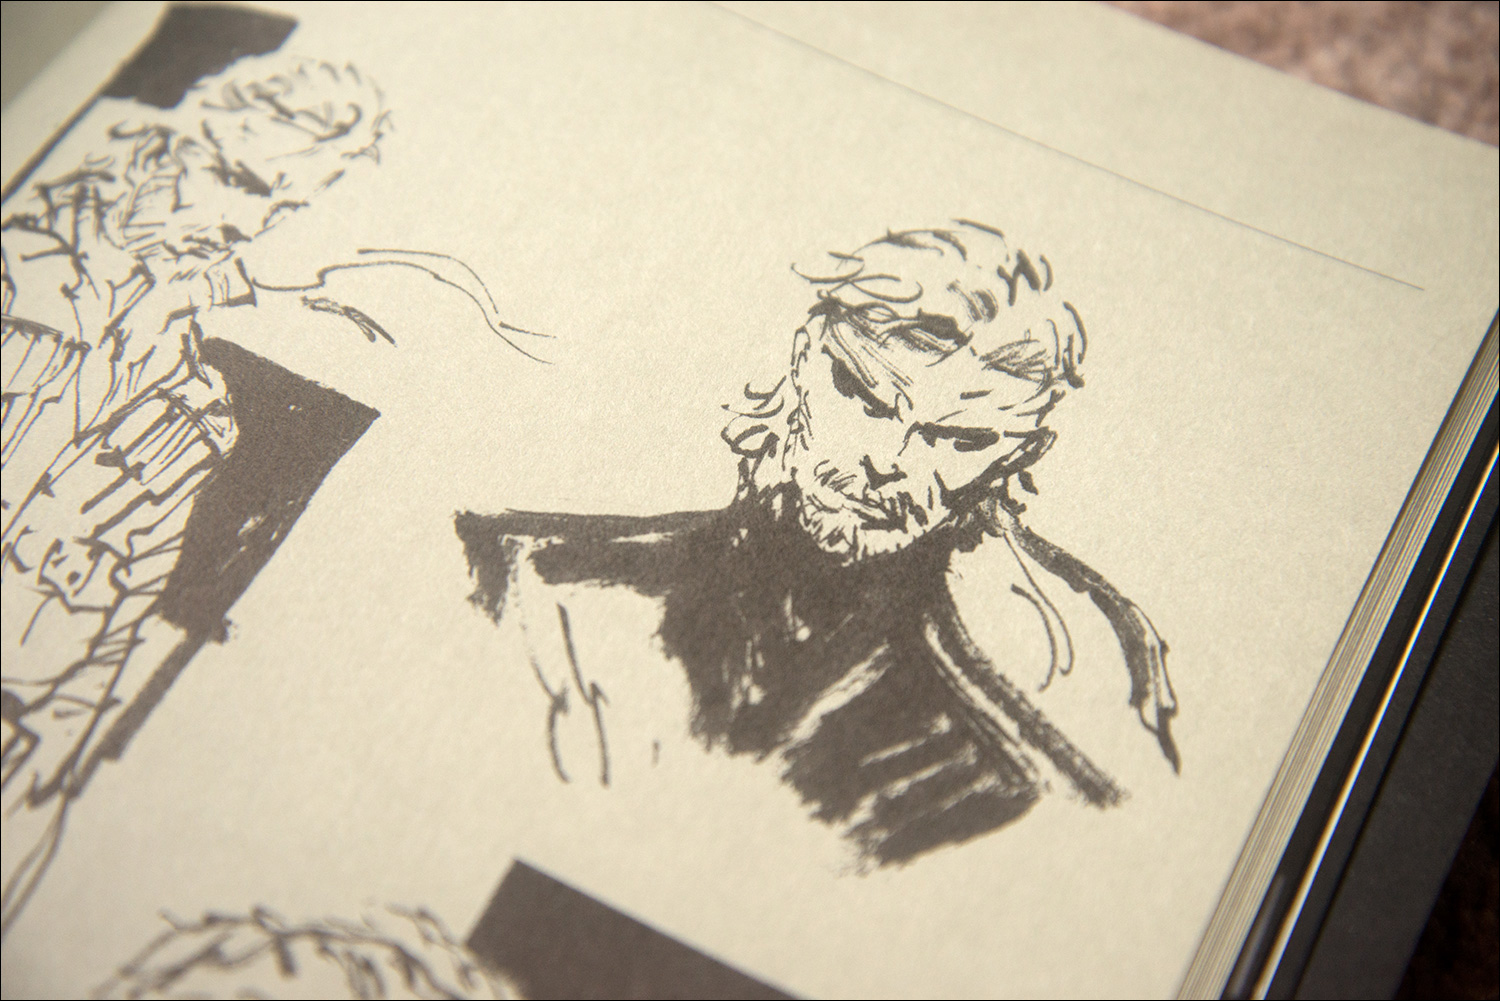 The-Art-of-Metal-Gear-Solid-2-Snake-Sketch